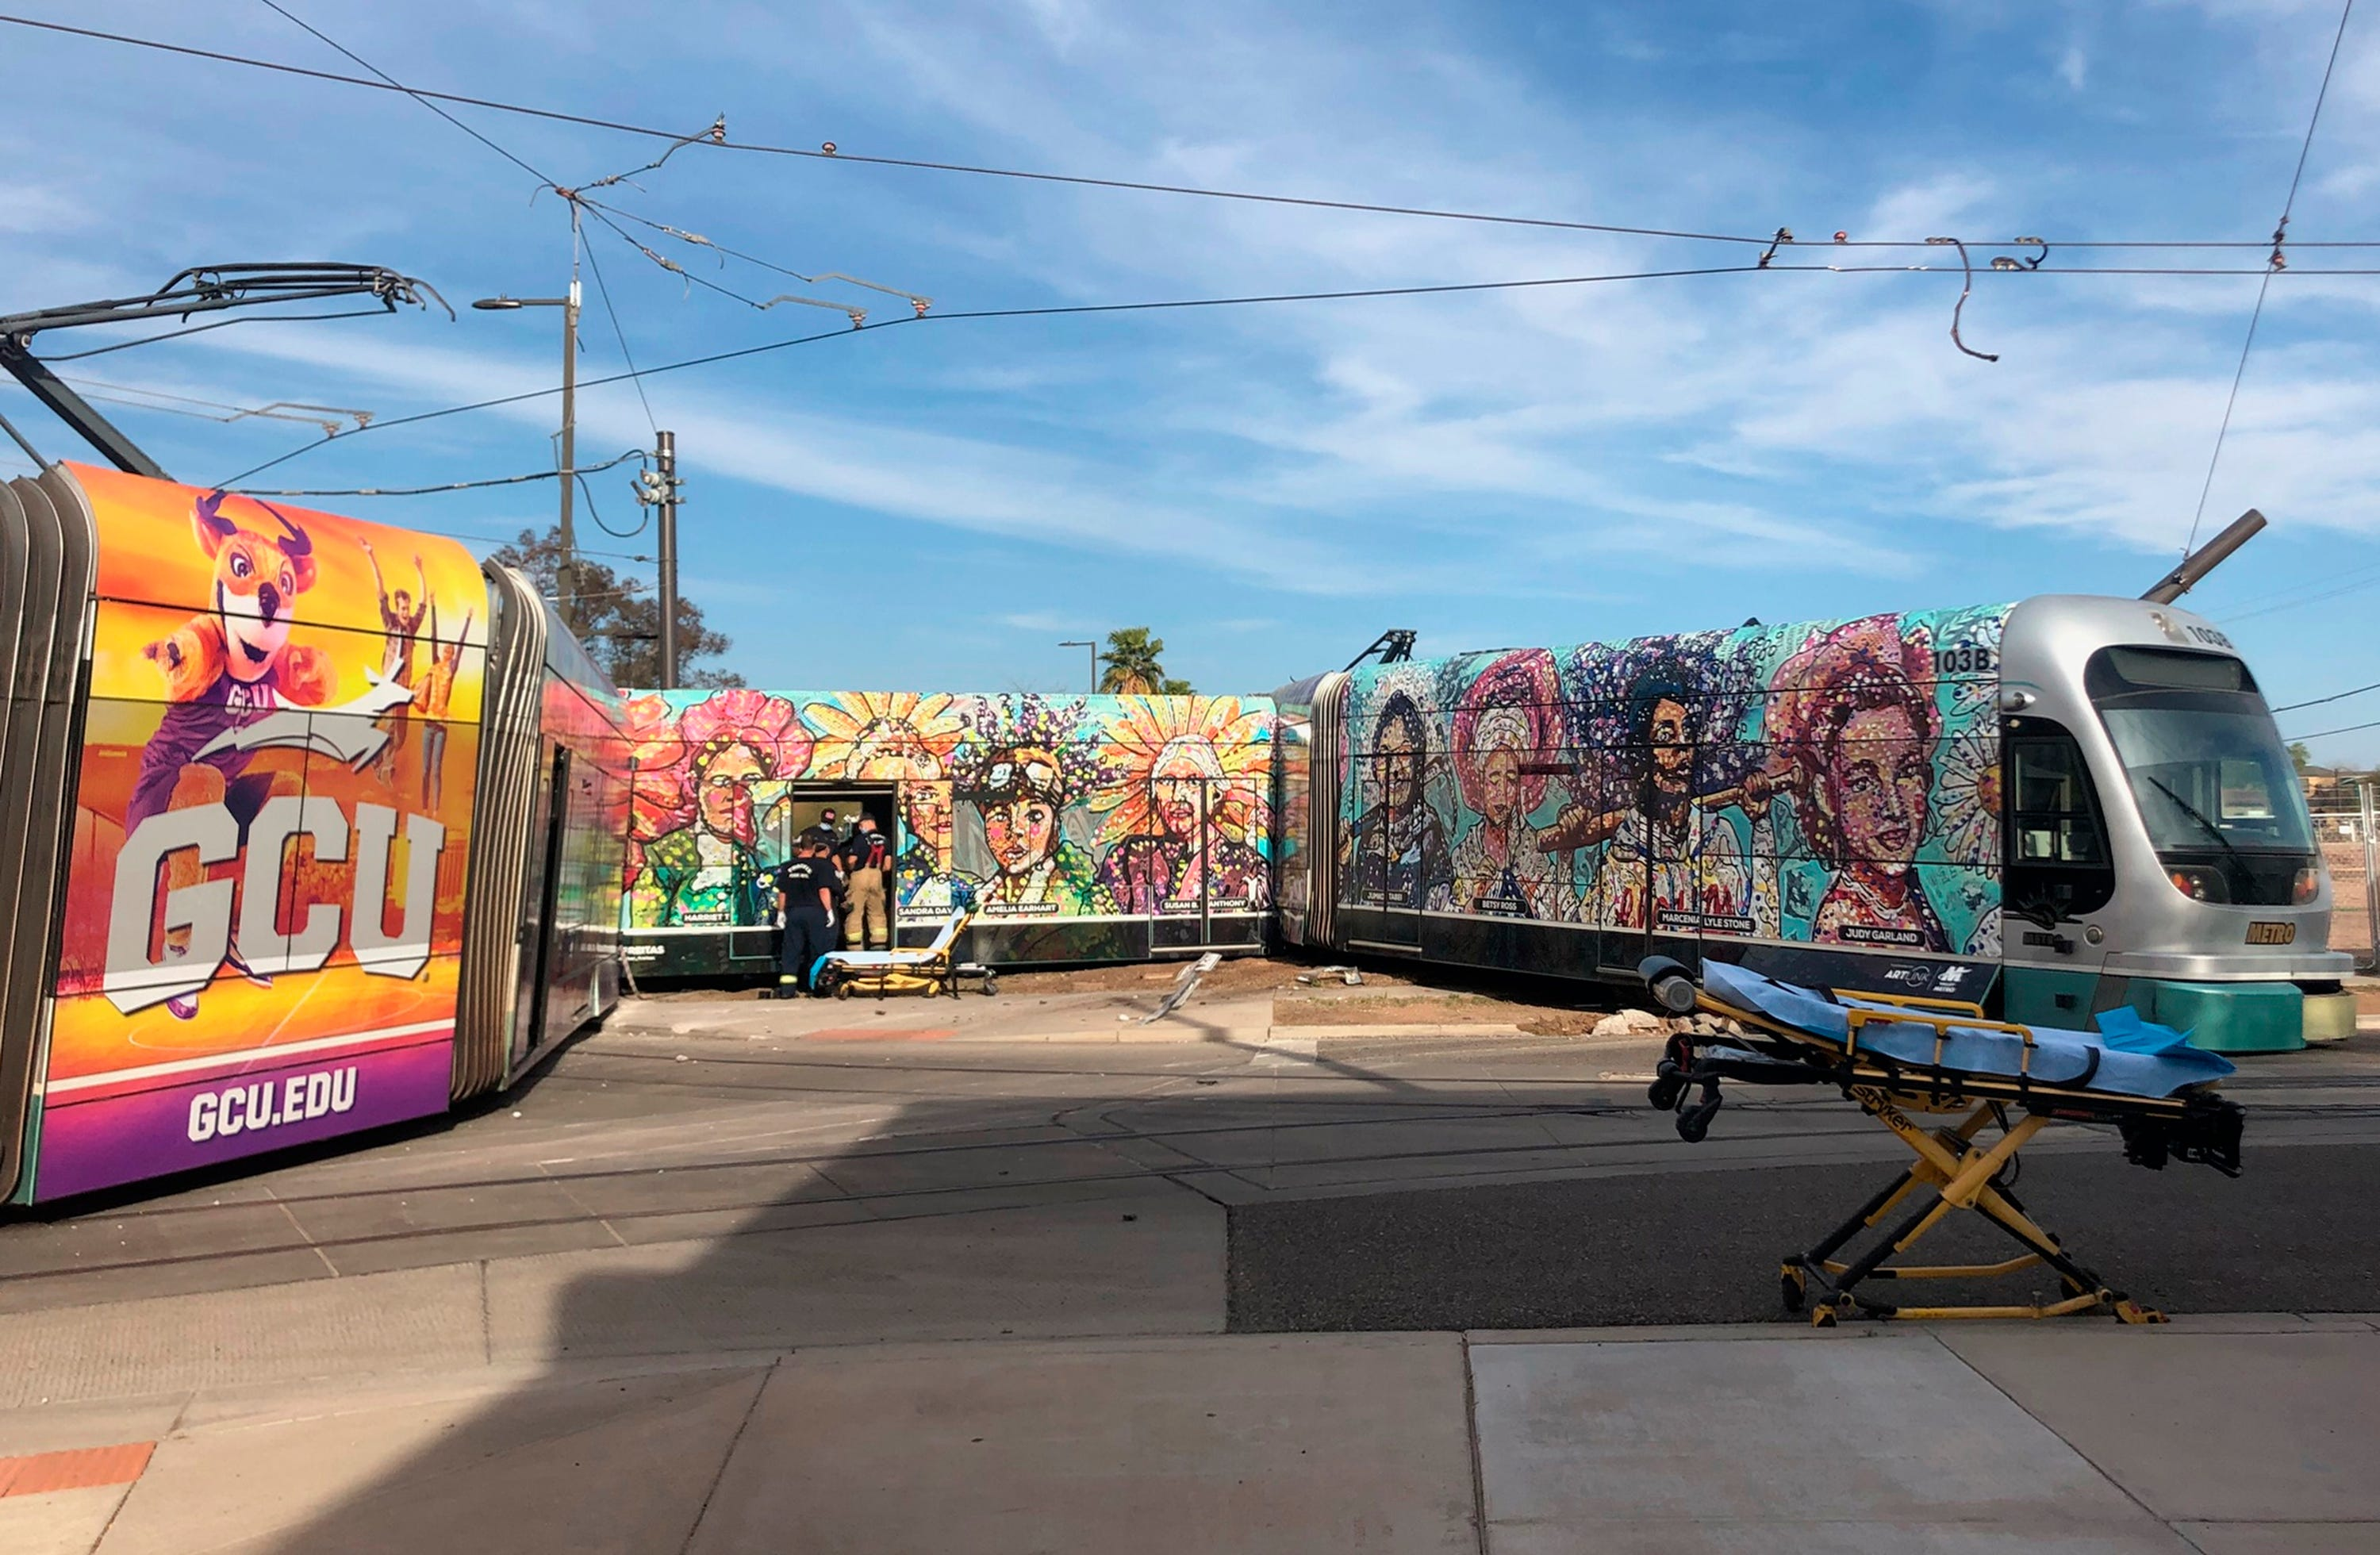 6 people injured after car collides with train in Phoenix 2